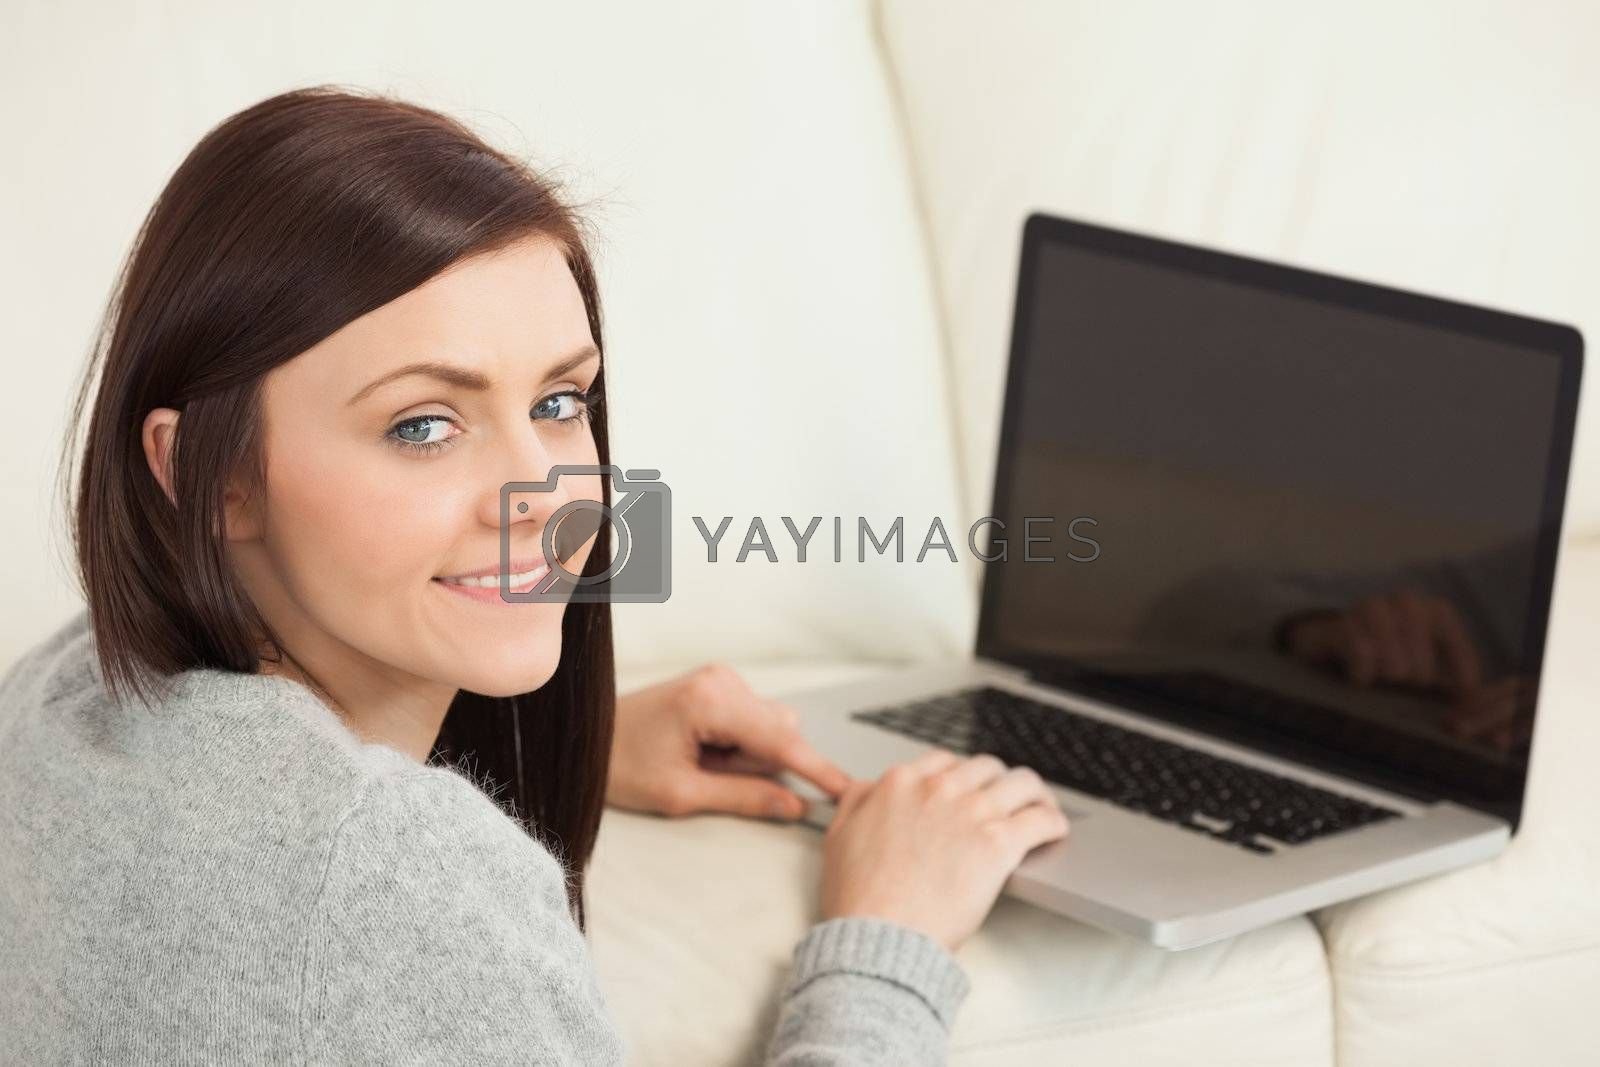 Smiling girl using a laptop on a sofa looking at camera by Wavebreakmedia